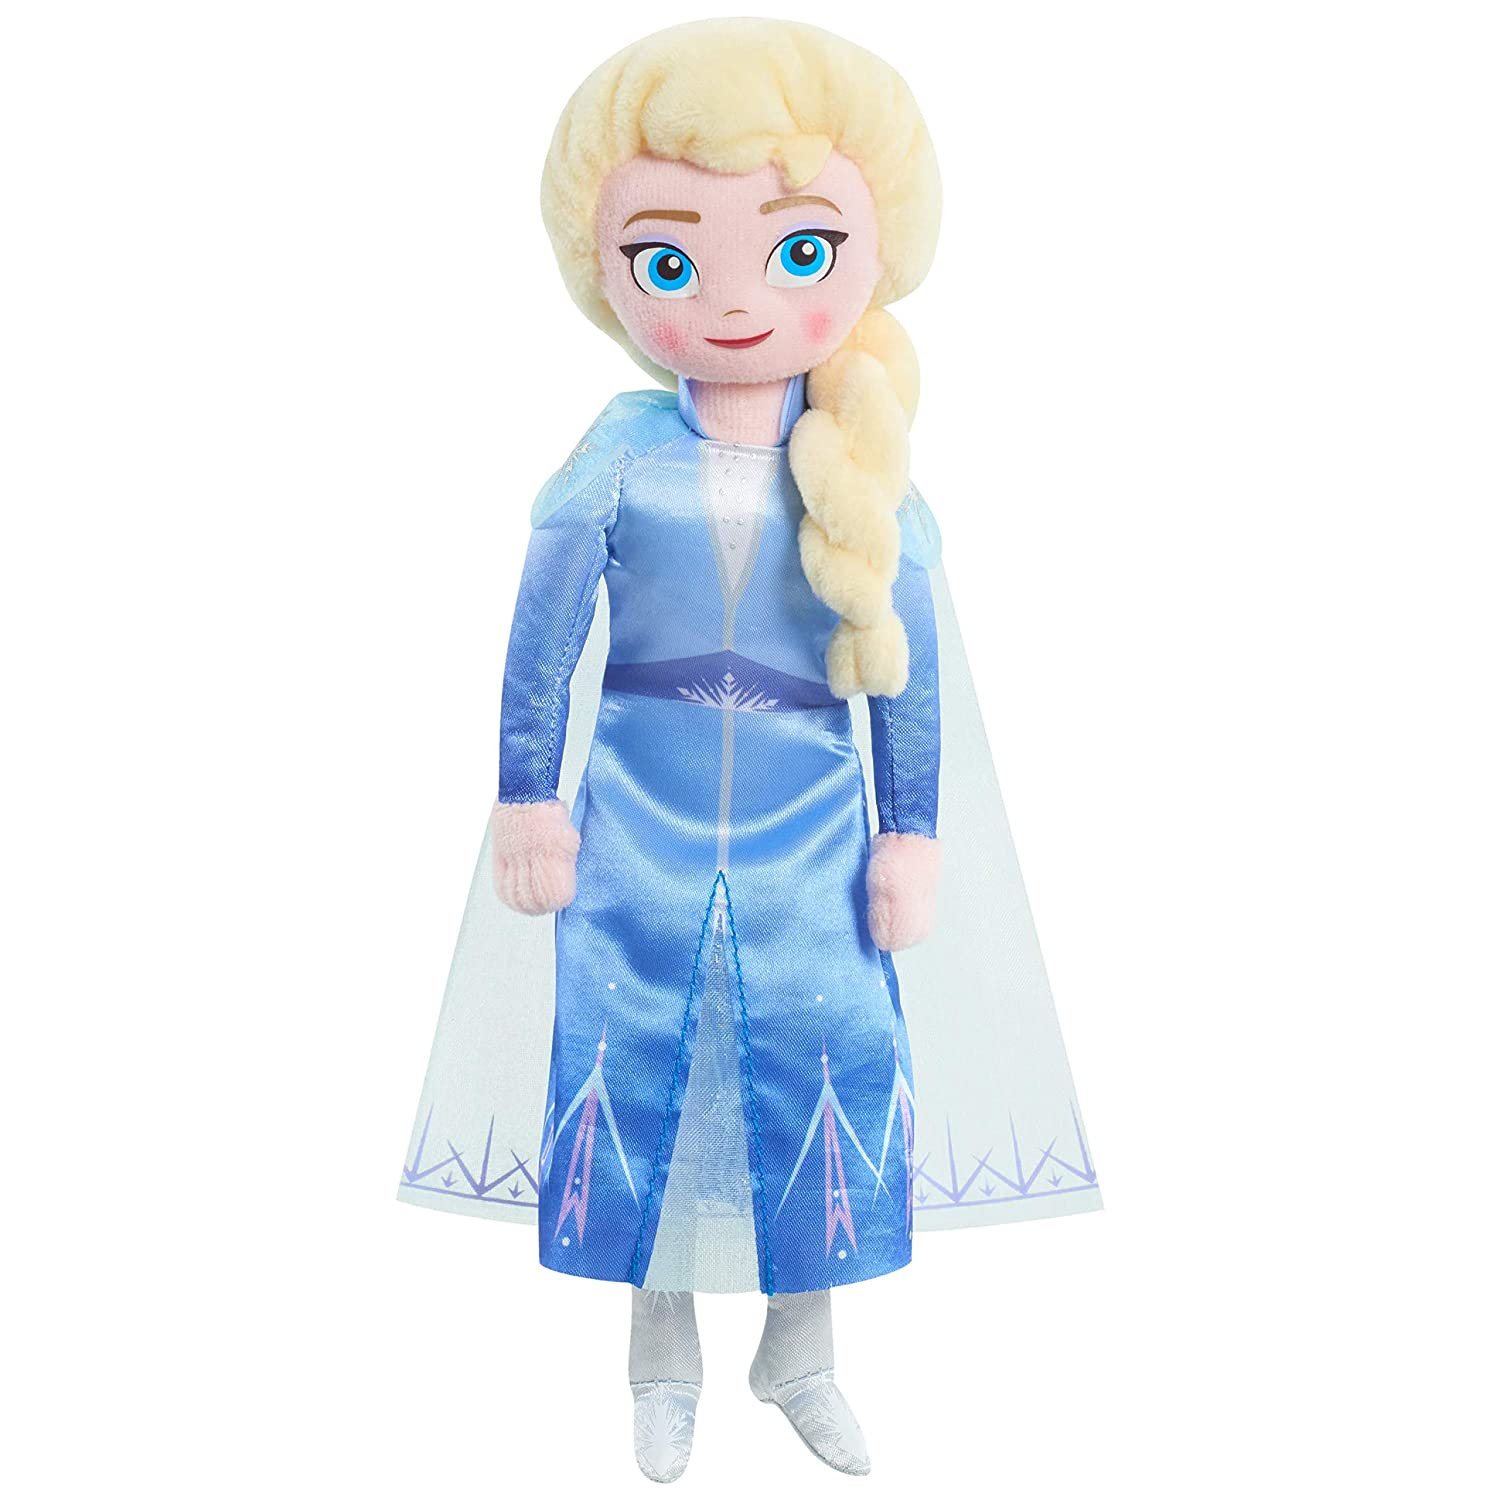 Amazon.com: Disney Frozen 2 - Peluche de Elsa: Toys & Games